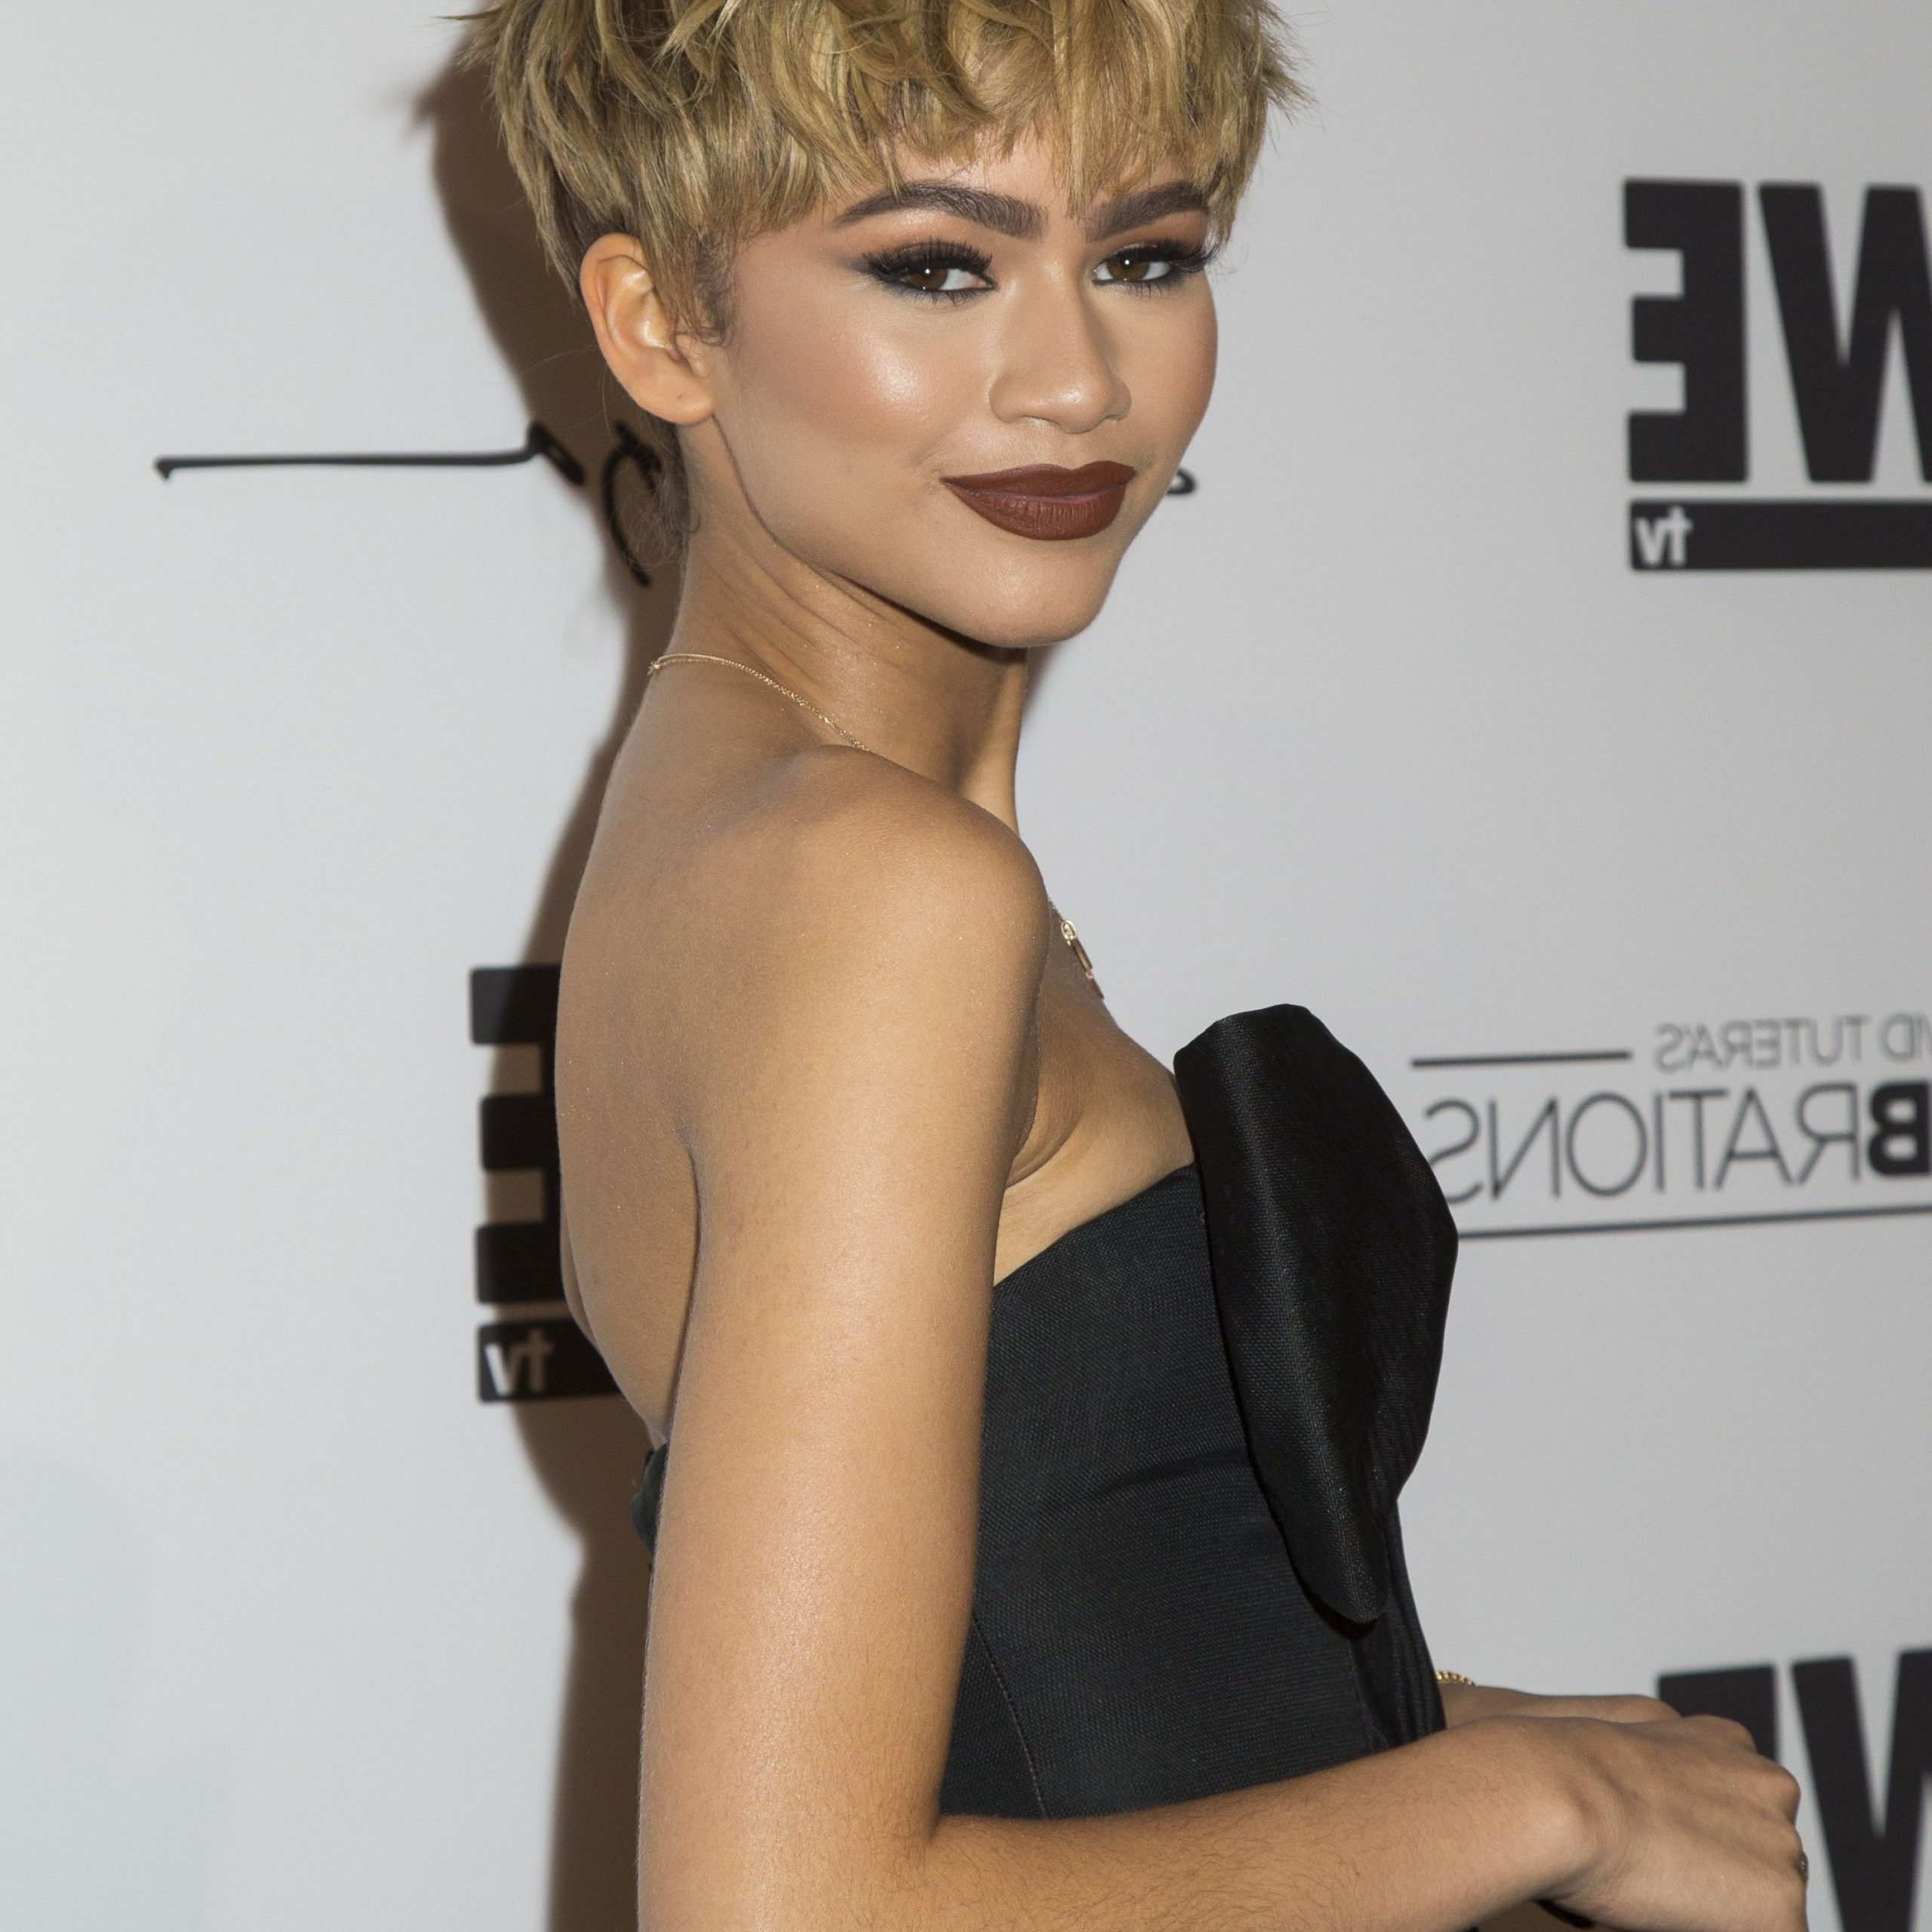 70 Best Pixie Cut Hairstyle Ideas 2019 – Cute Celebrity Pertaining To V Cut Outgrown Pixie Haircuts (View 10 of 20)